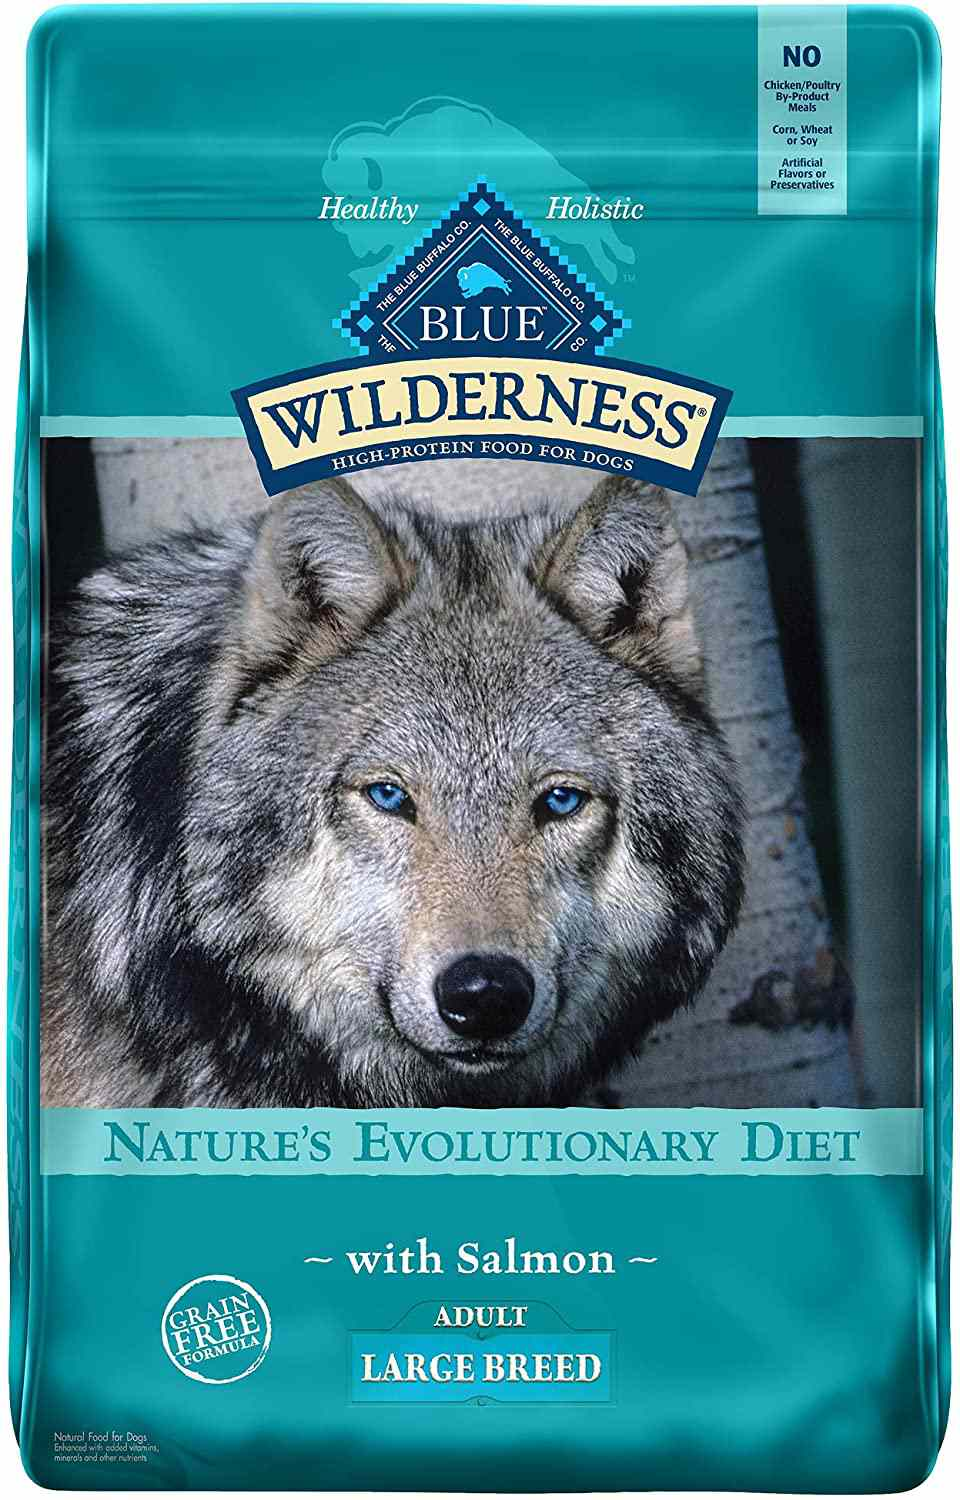 Blue Buffalo Wilderness High Protein Grain-Free Natural Large Breed Dry Dog Food